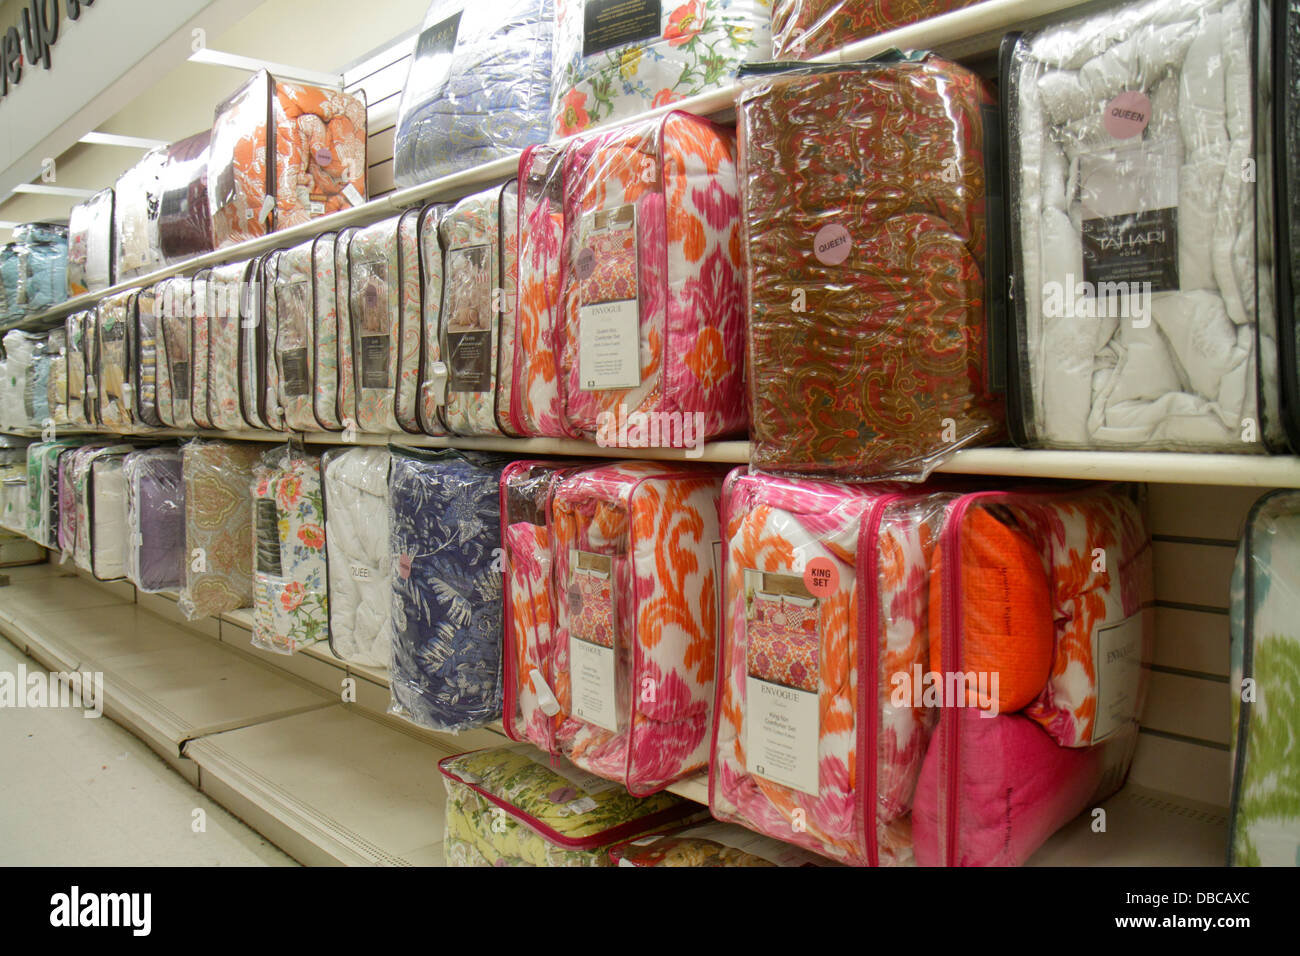 Miami Florida Aventura Marshalls Home Goods discount department store  retail display sale bedding. Miami Florida Aventura Marshalls Home Goods discount department